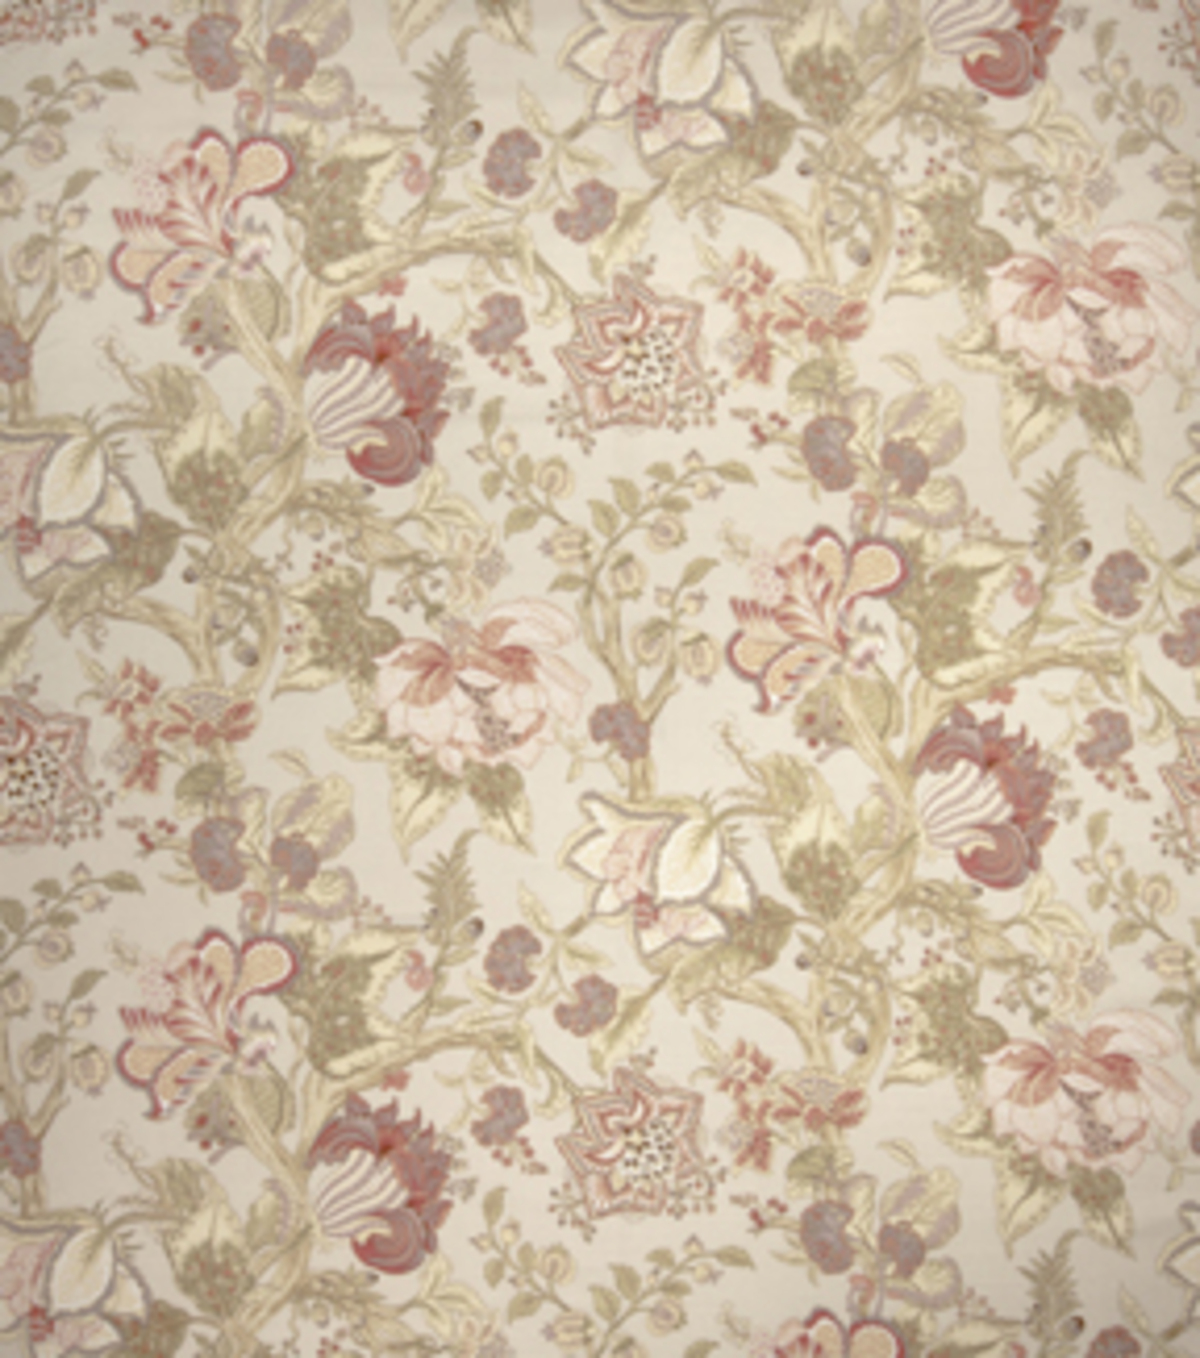 Home Decor 8\u0022x8\u0022 Fabric Swatch-Upholstery Fabric Eaton Square Twizzler Petal